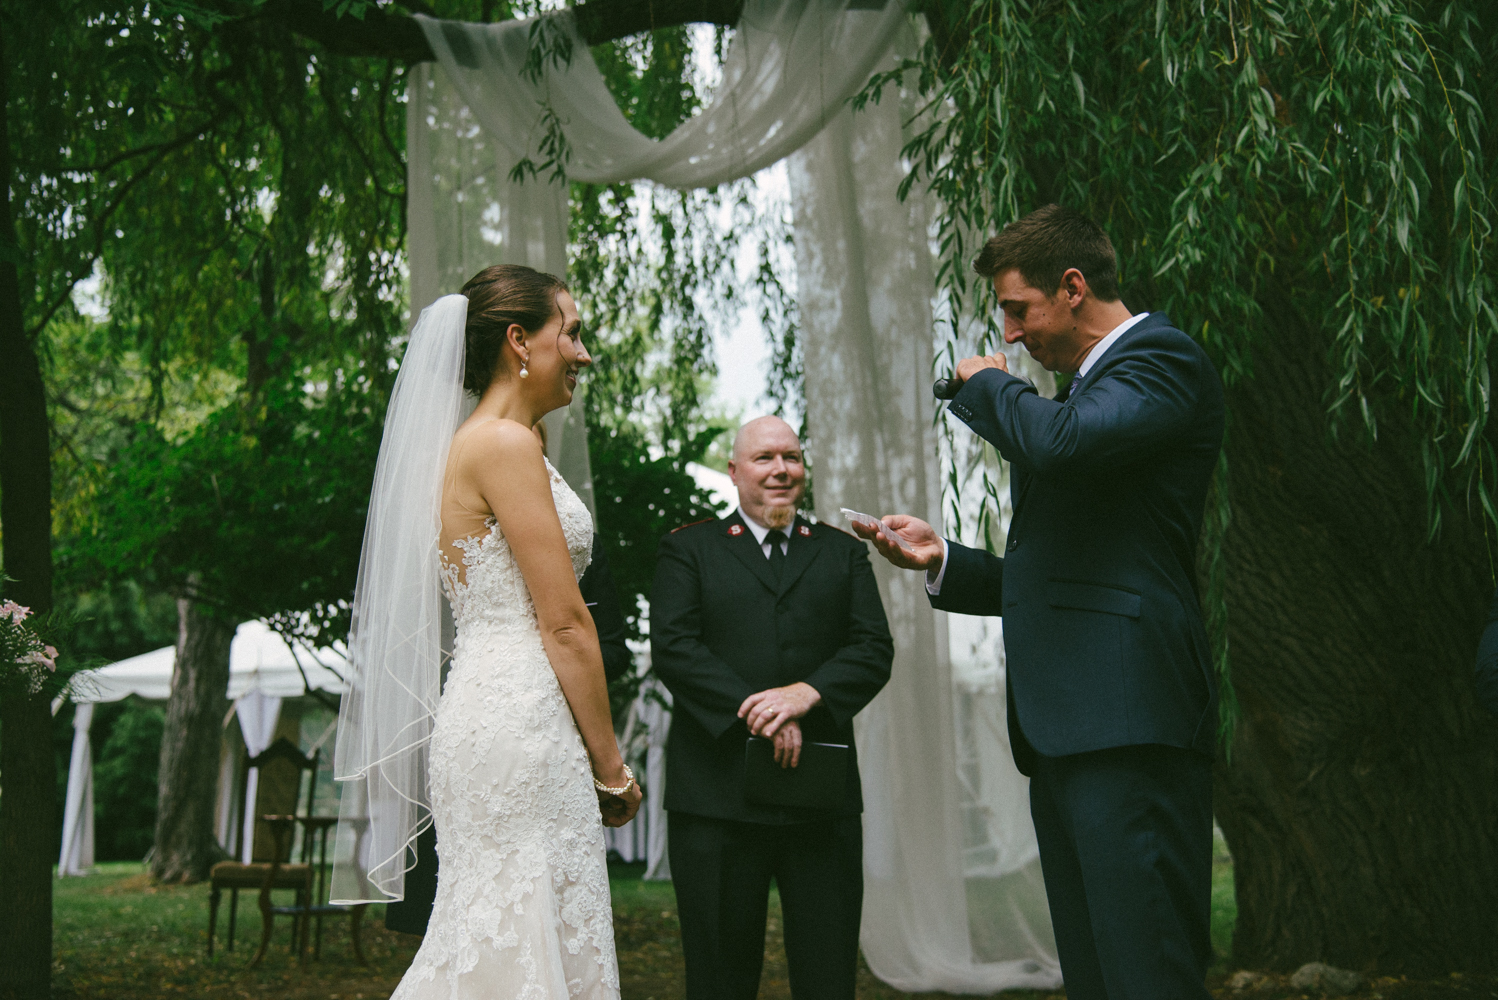 falkinson-ceremony-web-347.jpg